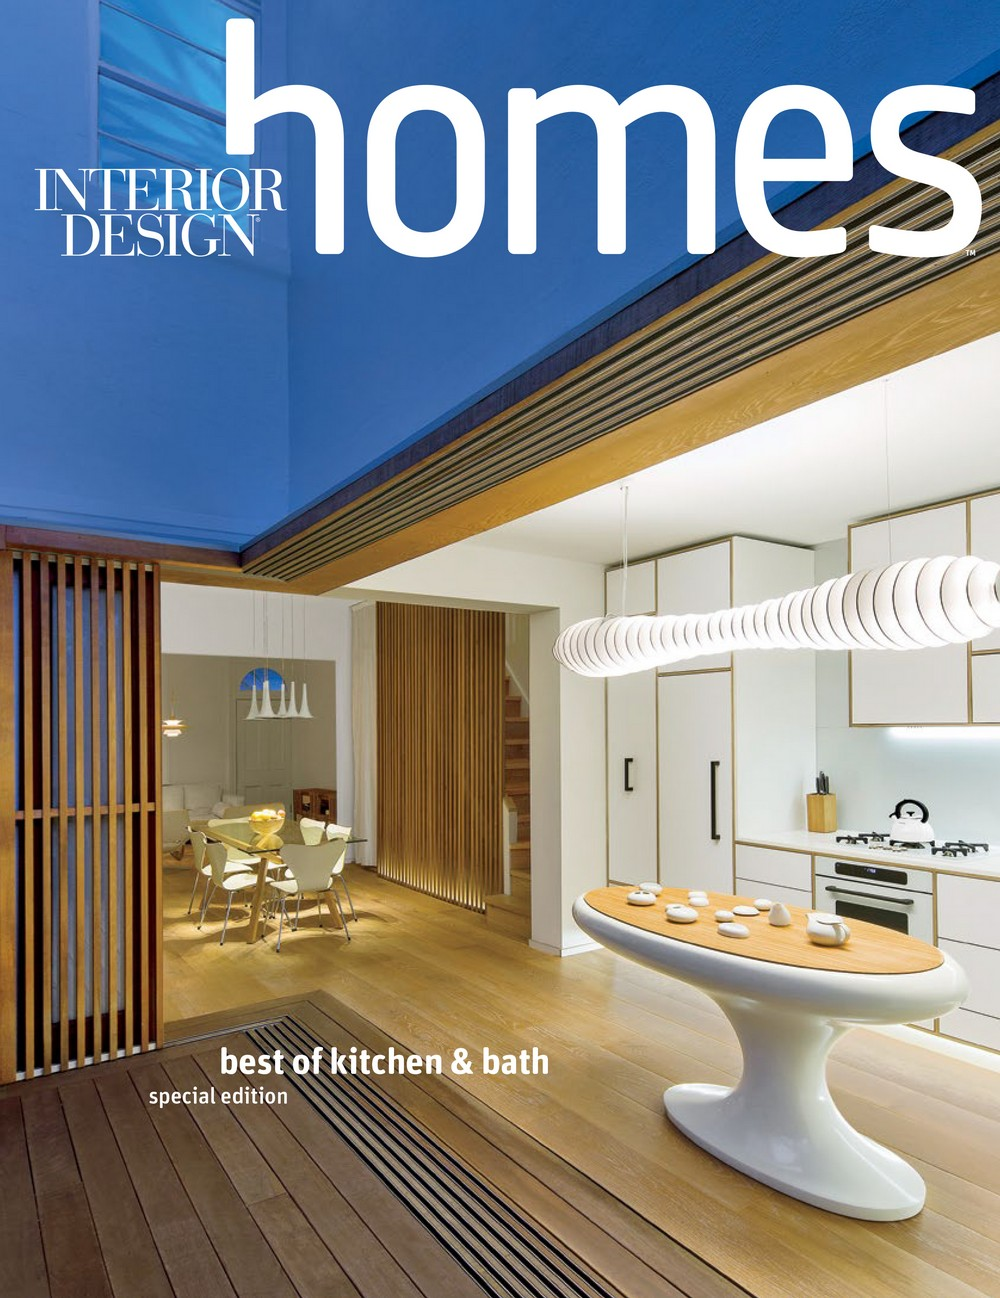 Discover The Best Of Kitchen And Bathroom Design In This Special Issuev kitchen and bathroom design Discover The Best Of Kitchen And Bathroom Design In This Special Issue Discover The Best Of Kitchen And Bathroom Design In This Special Issue 2